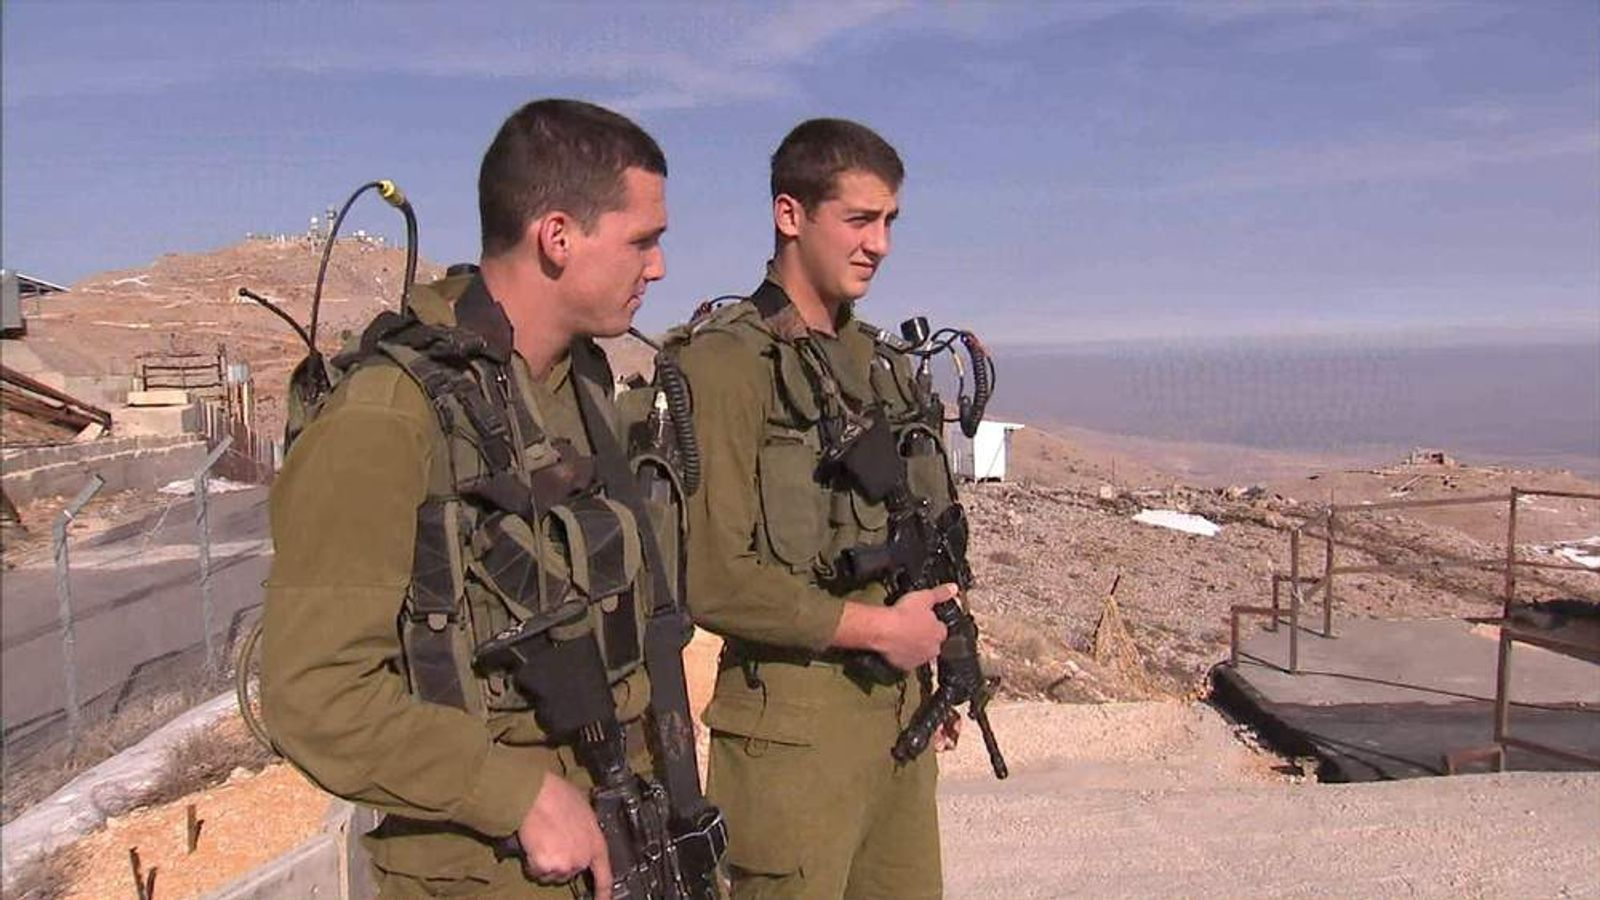 Paratroopers in the Golan Heights